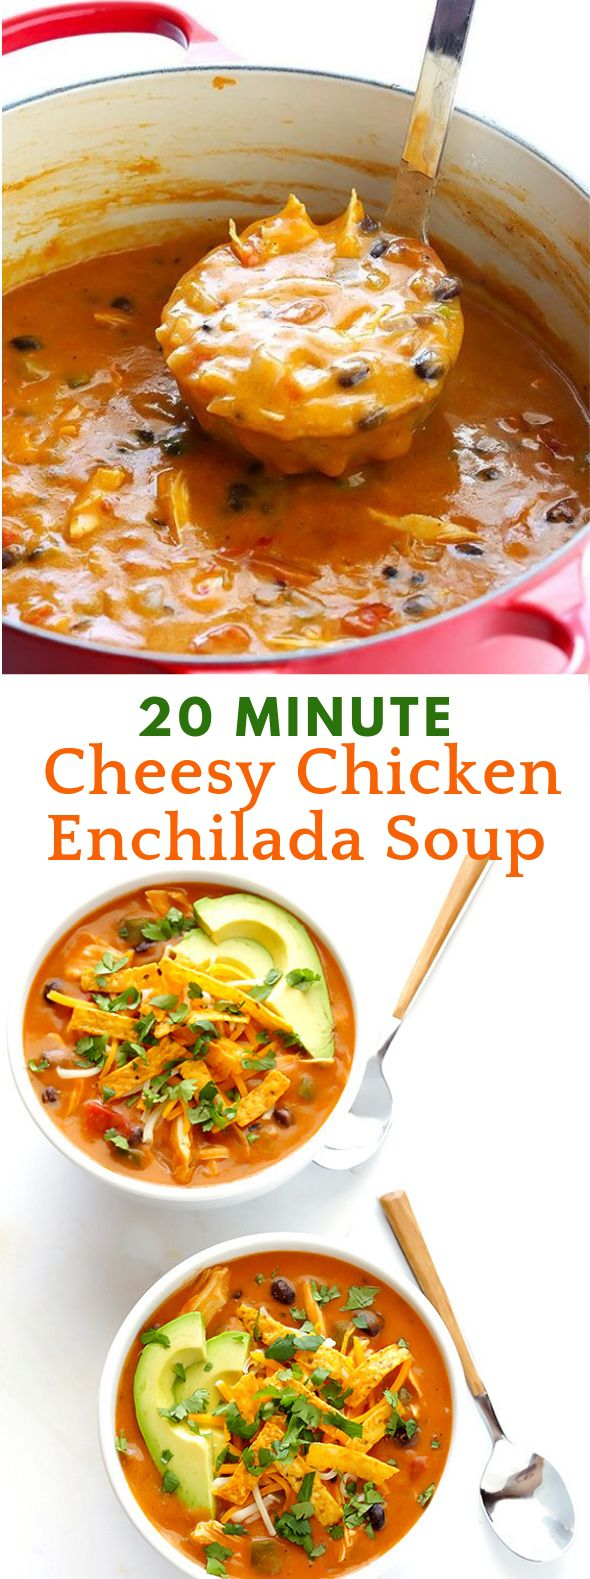 20-MINUTE CHEESY CHICKEN ENCHILADA SOUP #Dinner #Soup